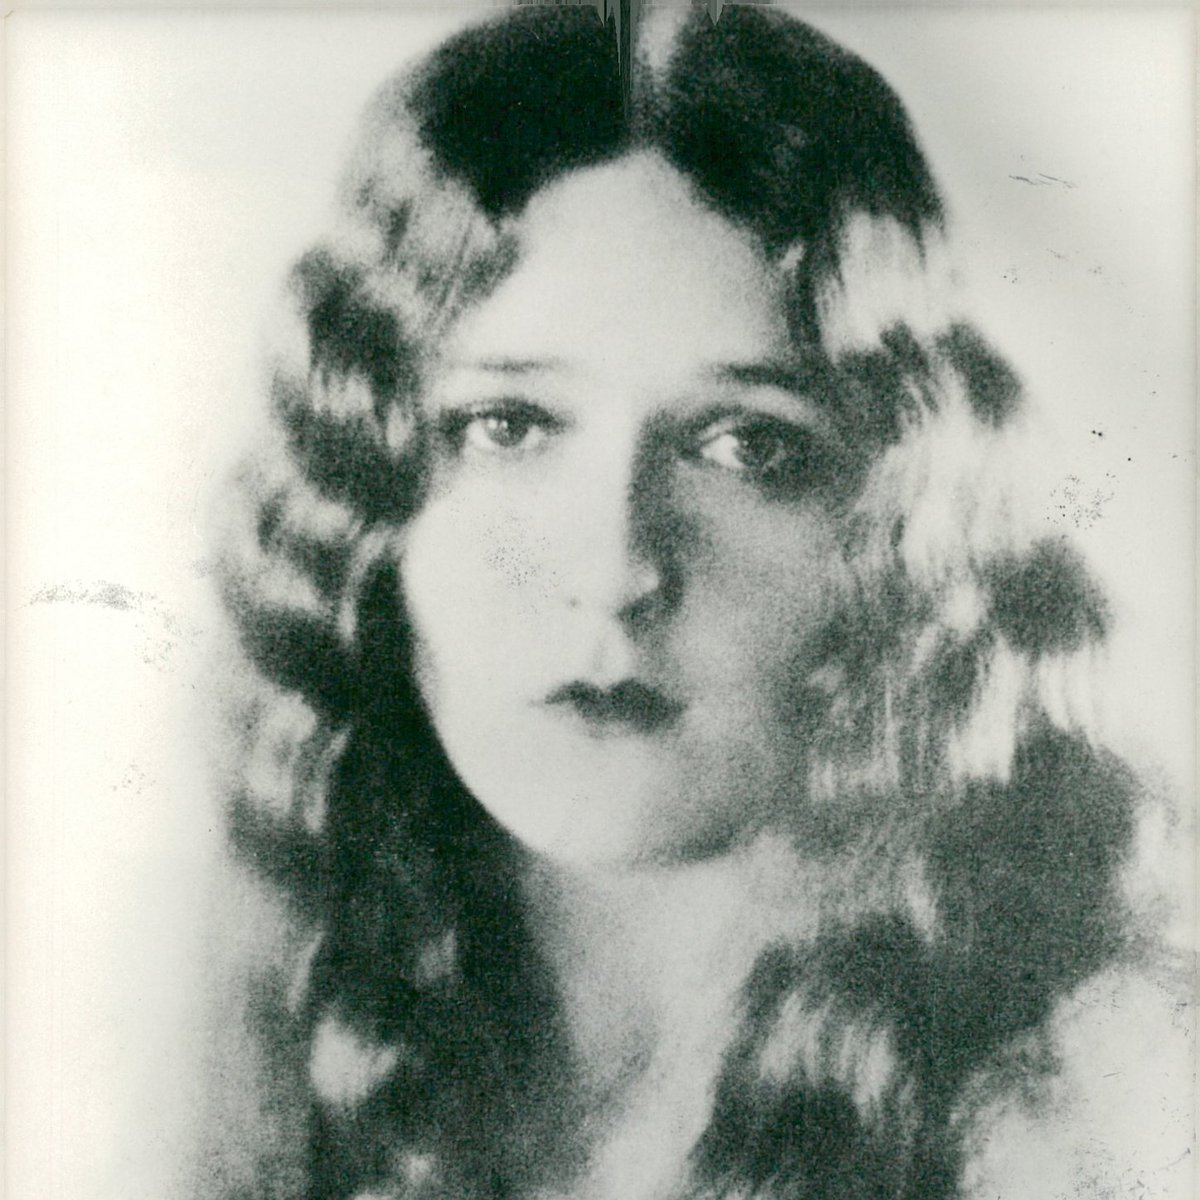 MARY PICKFORD - born this day in 1892 - collect vintage photographs from some of Europes foremost pressphoto archives:  #actress #Documentary #archives #photo #PHOTOS #artcollectors #artcollector #oldphotos #giftidea #UniqueGifts #homedesign